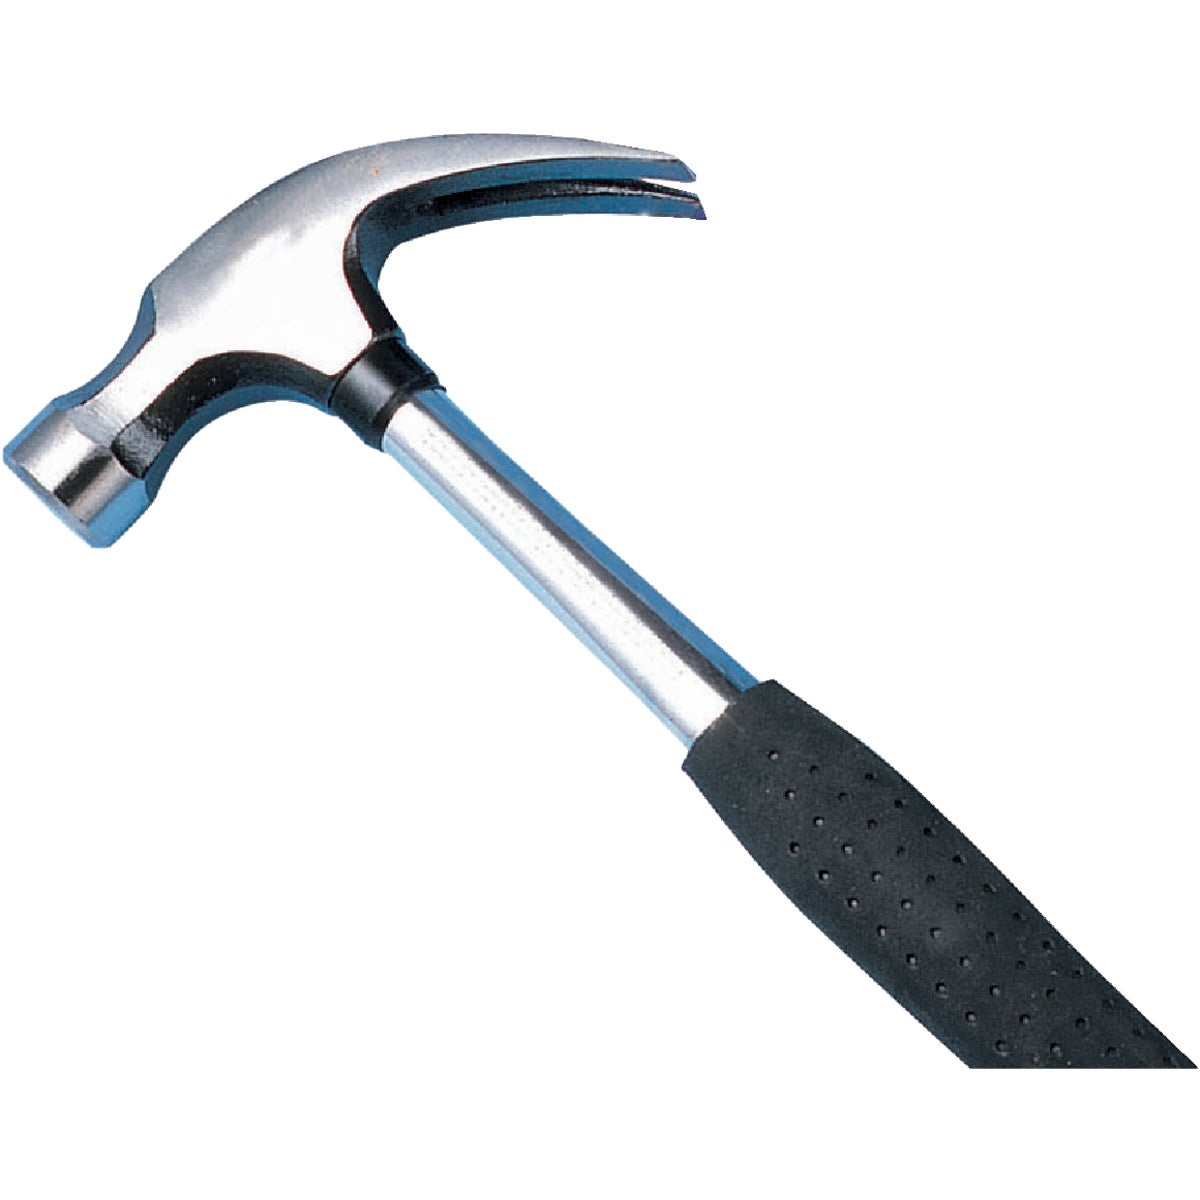 16OZ STL/HDL CLAW HAMMER - 314838 by Do it Best